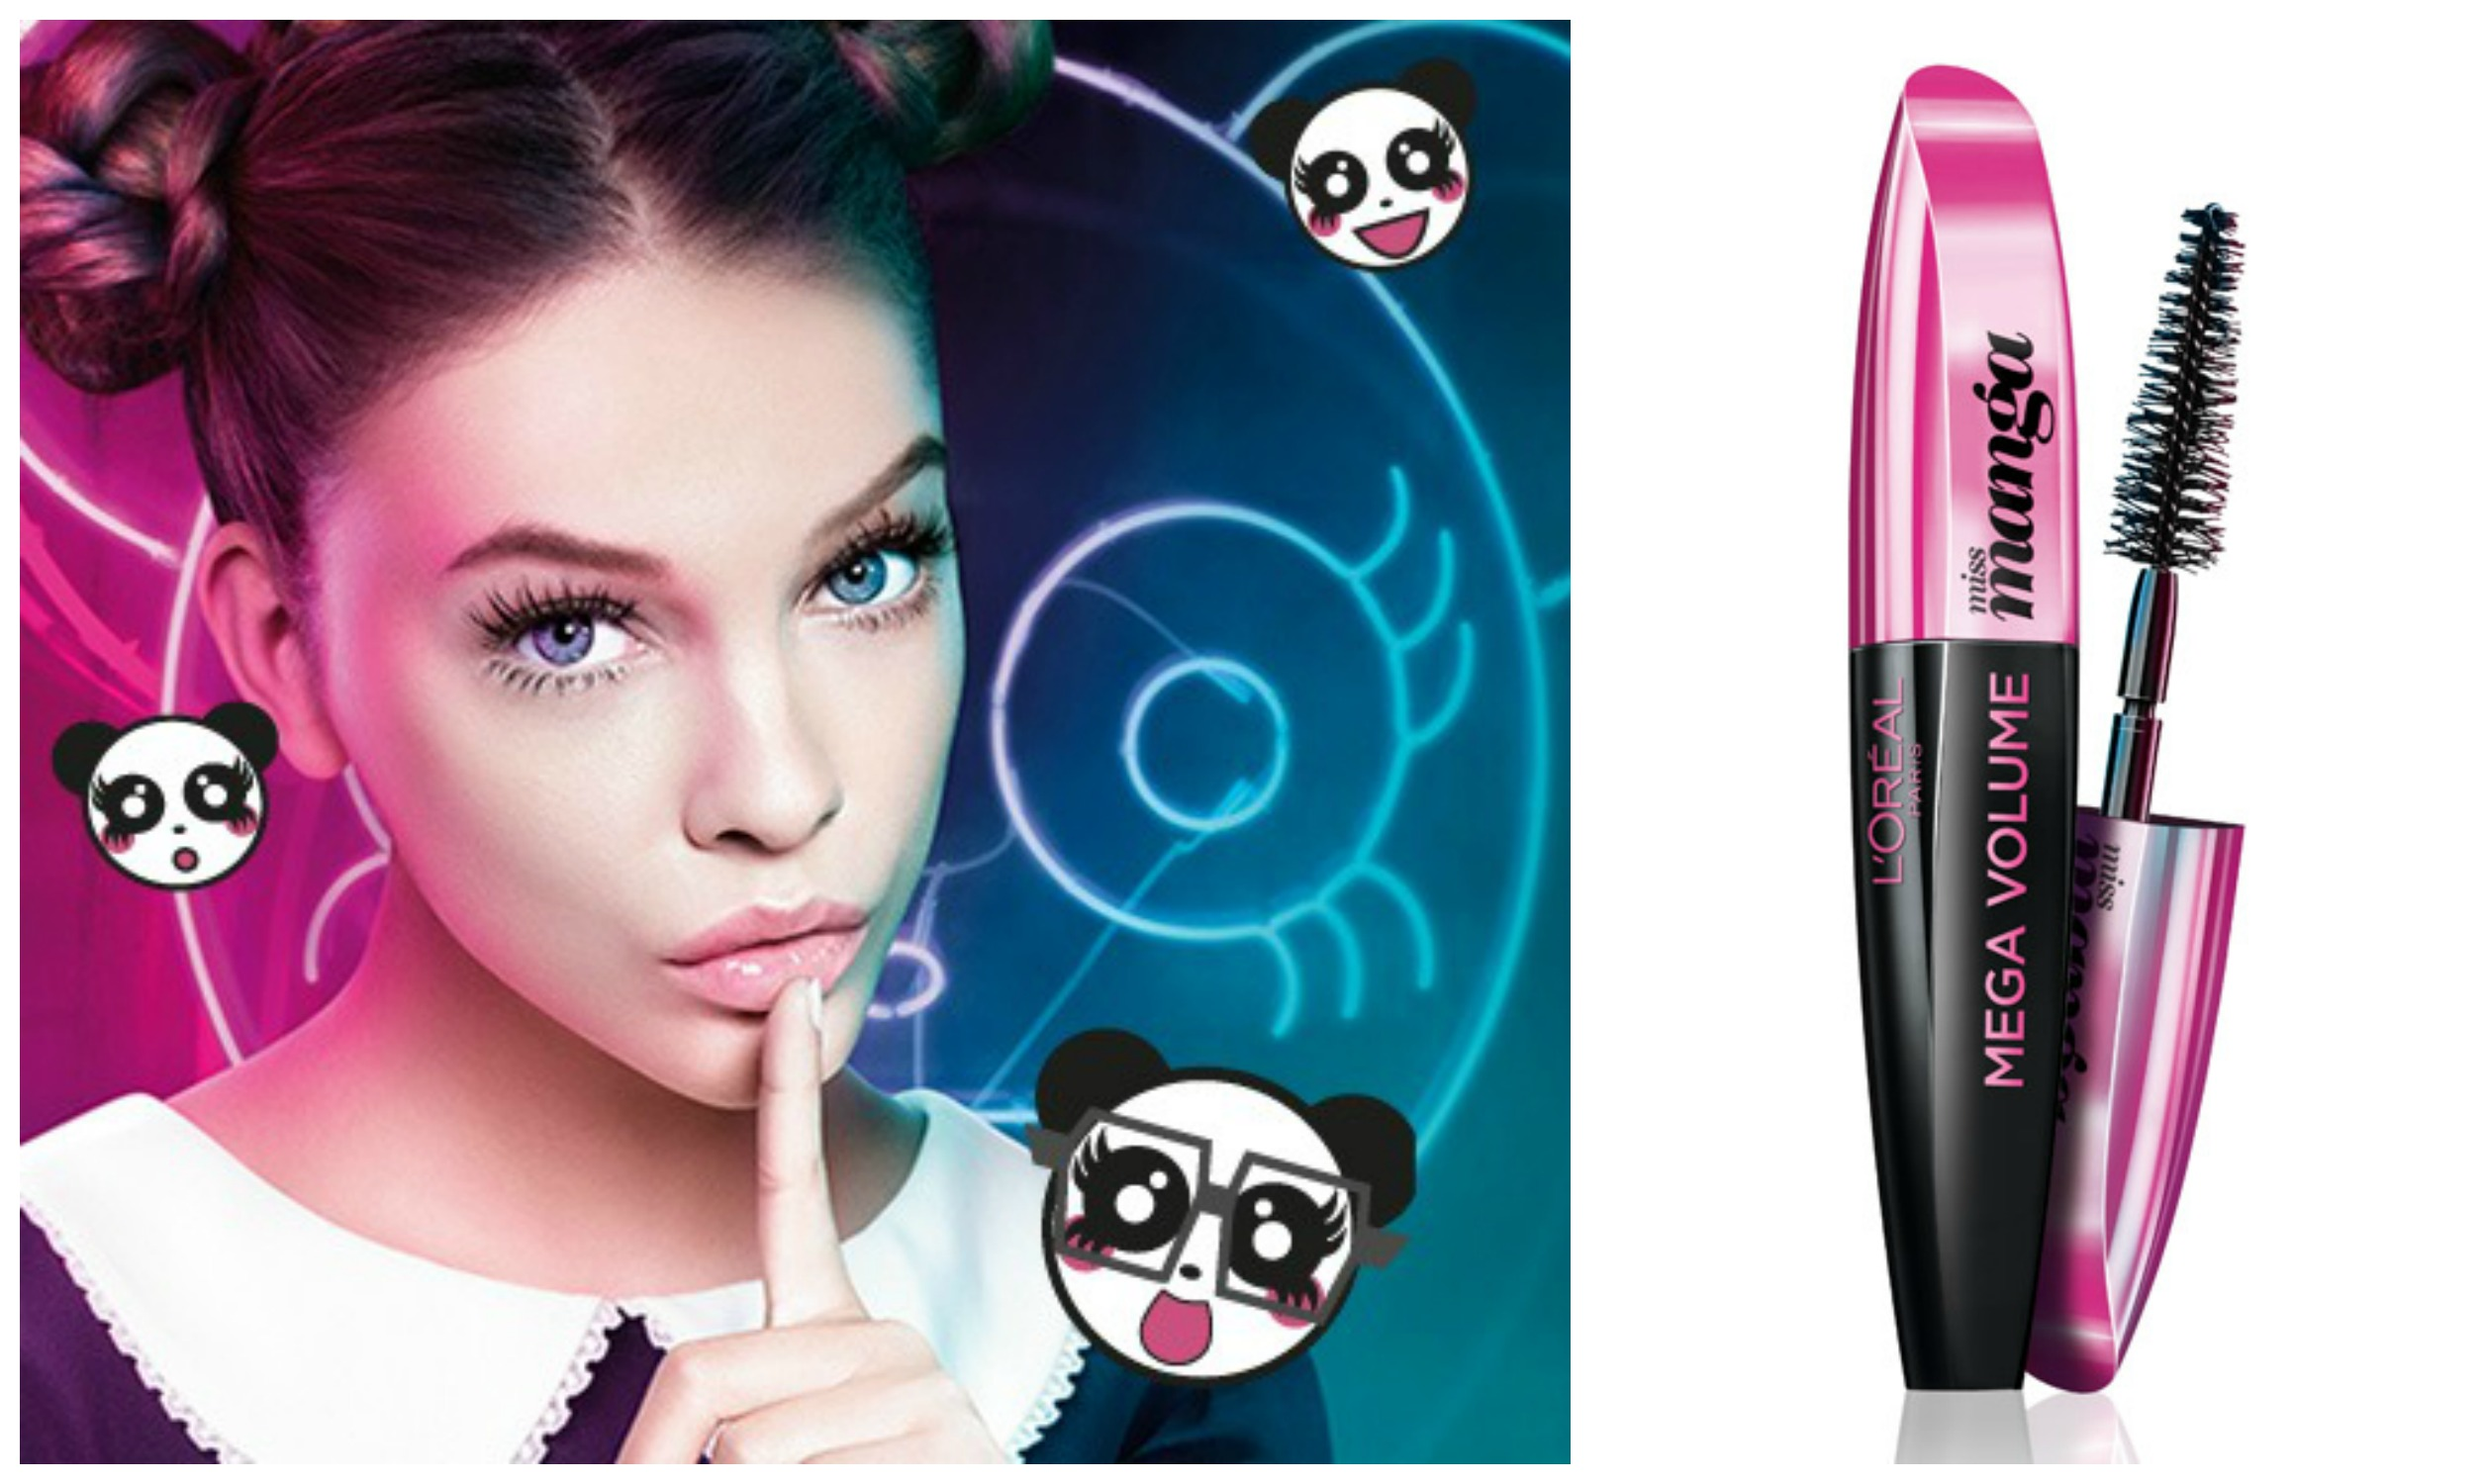 fa1ee7097b1 L'Oréal Mega Volume Miss Manga Mascara Is Obscenely Good: Review And ...